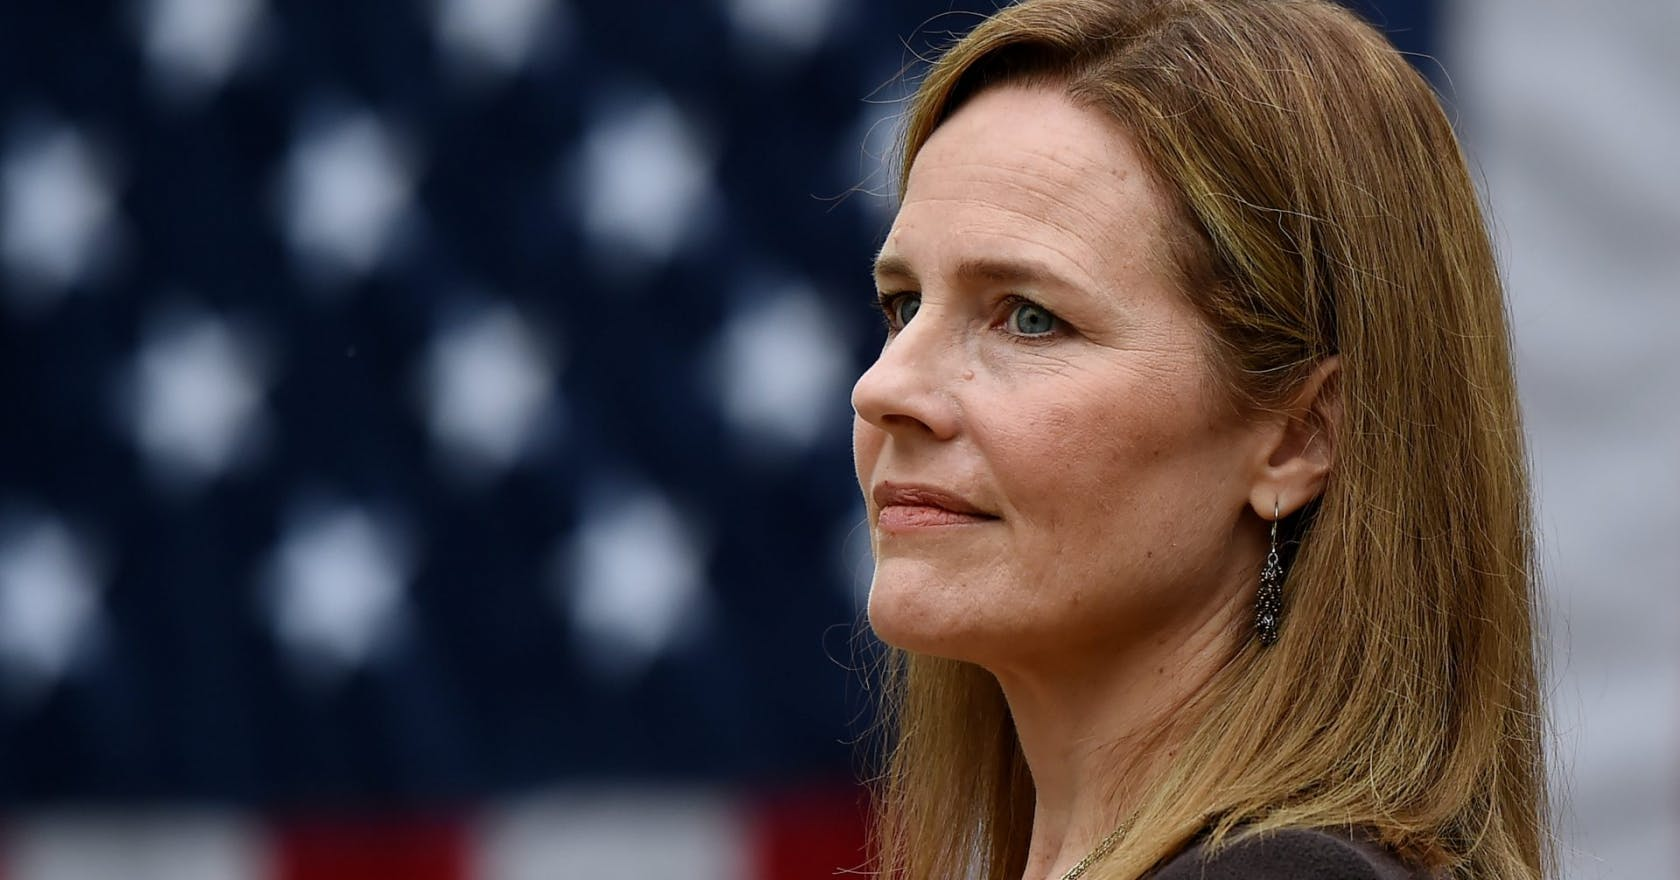 What Amy Coney Barrett's Supreme Court nomination could mean for abortion rights in America